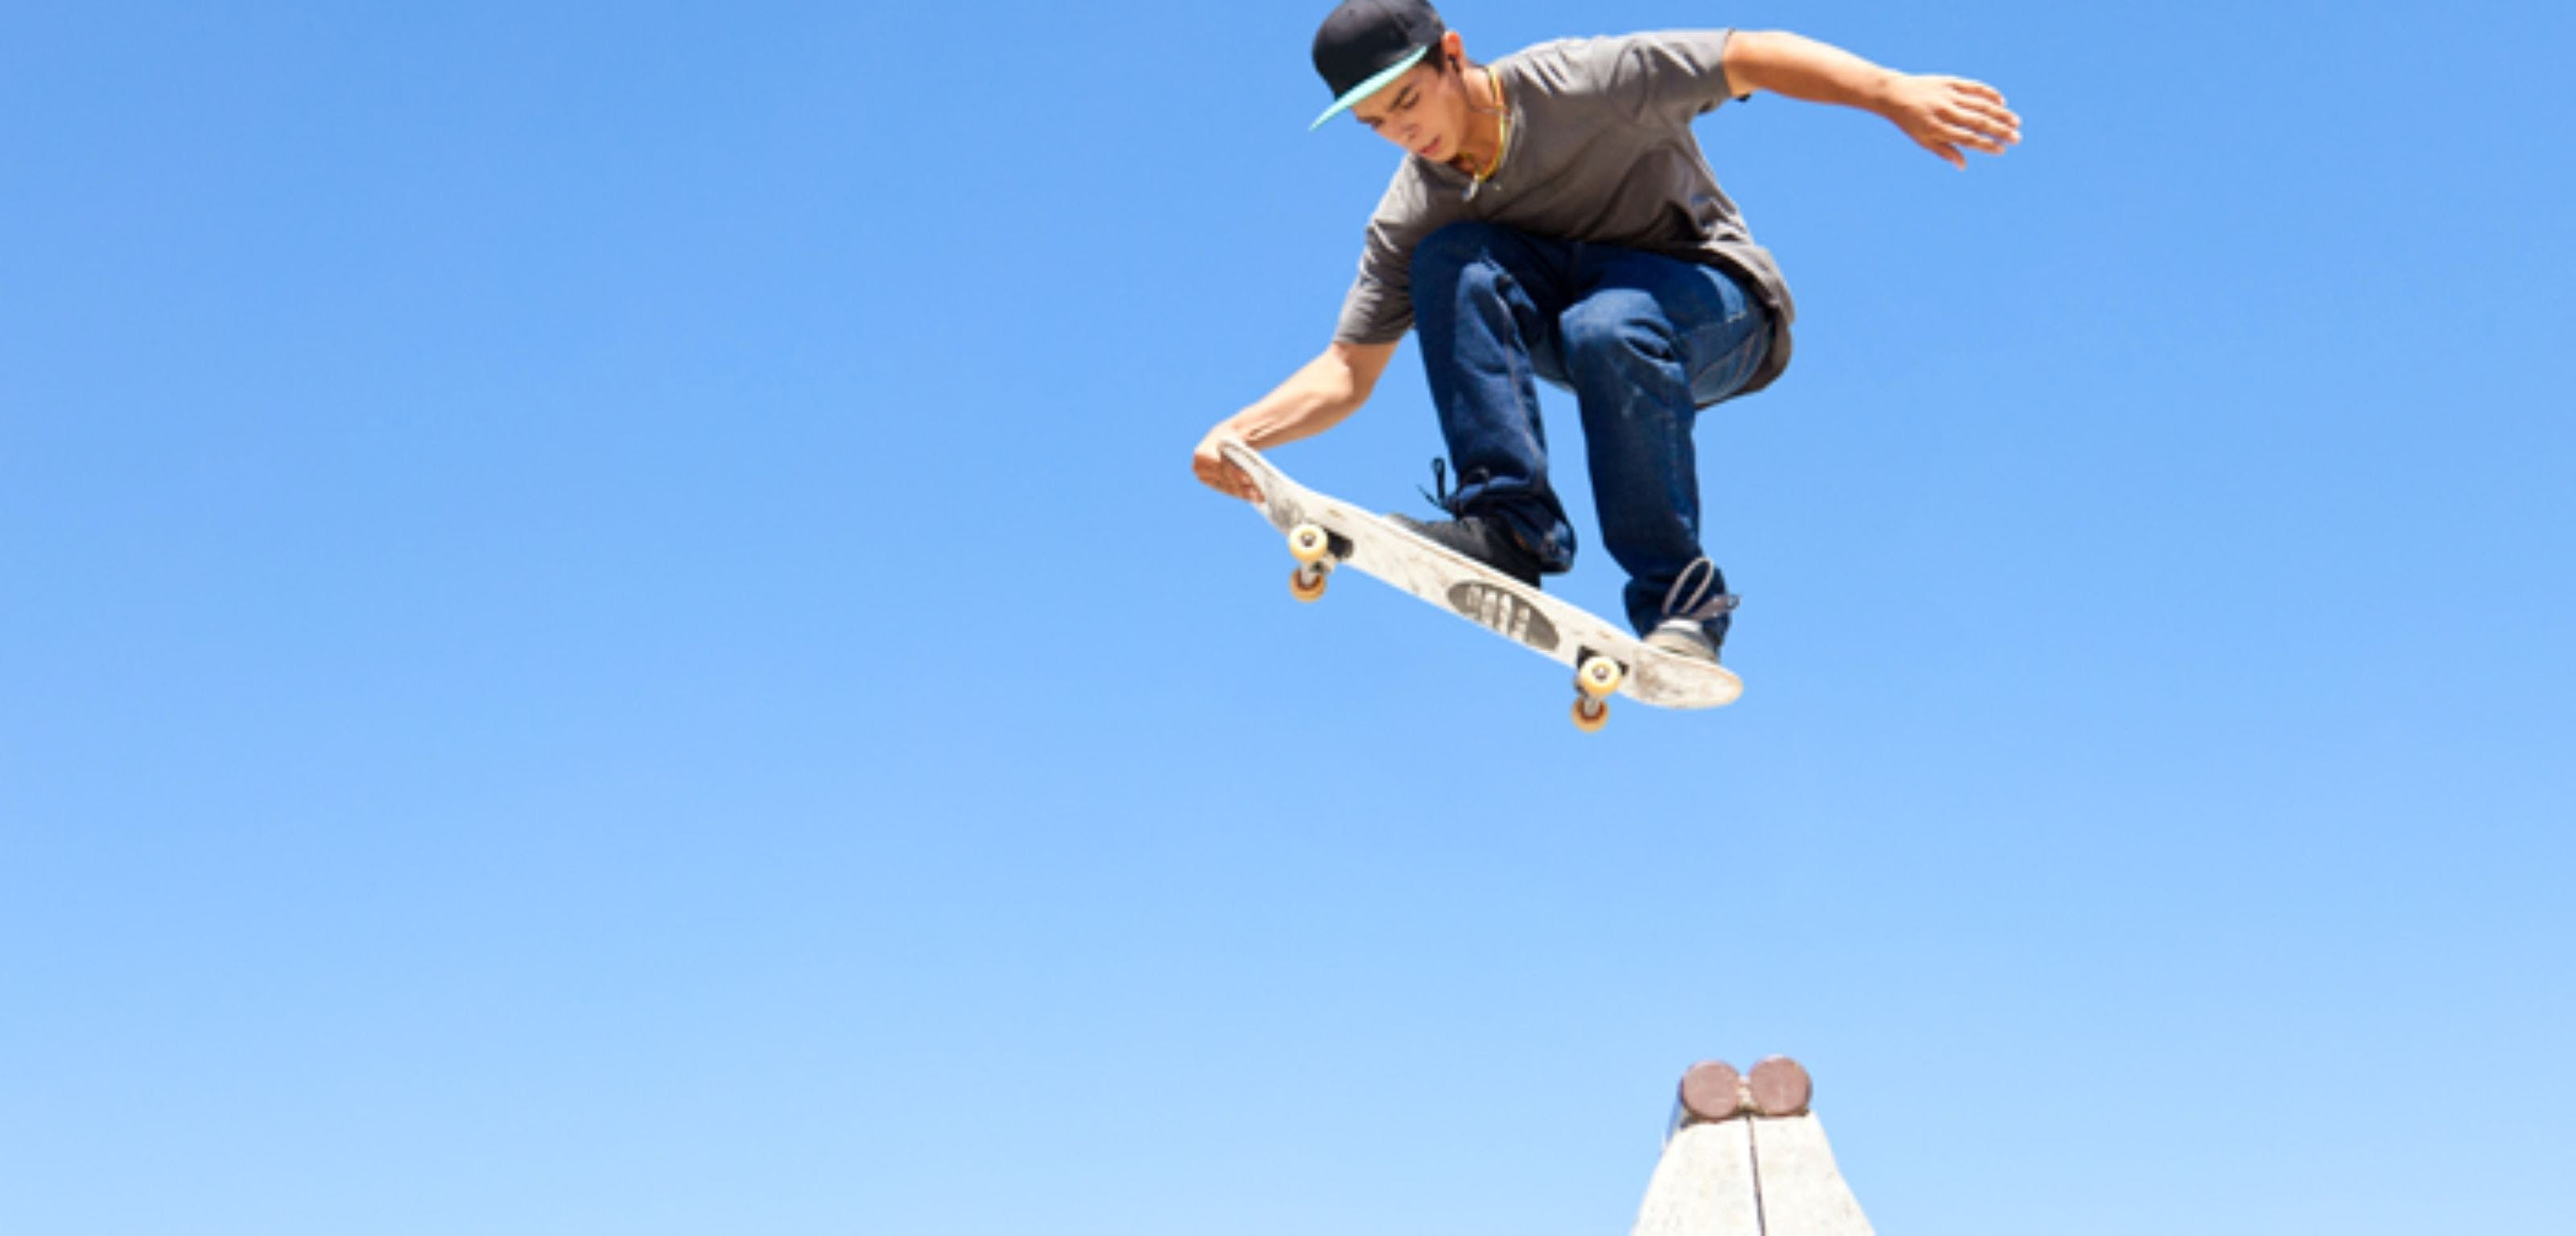 Campbelltown Skate Workshops - Accommodation in Surfers Paradise